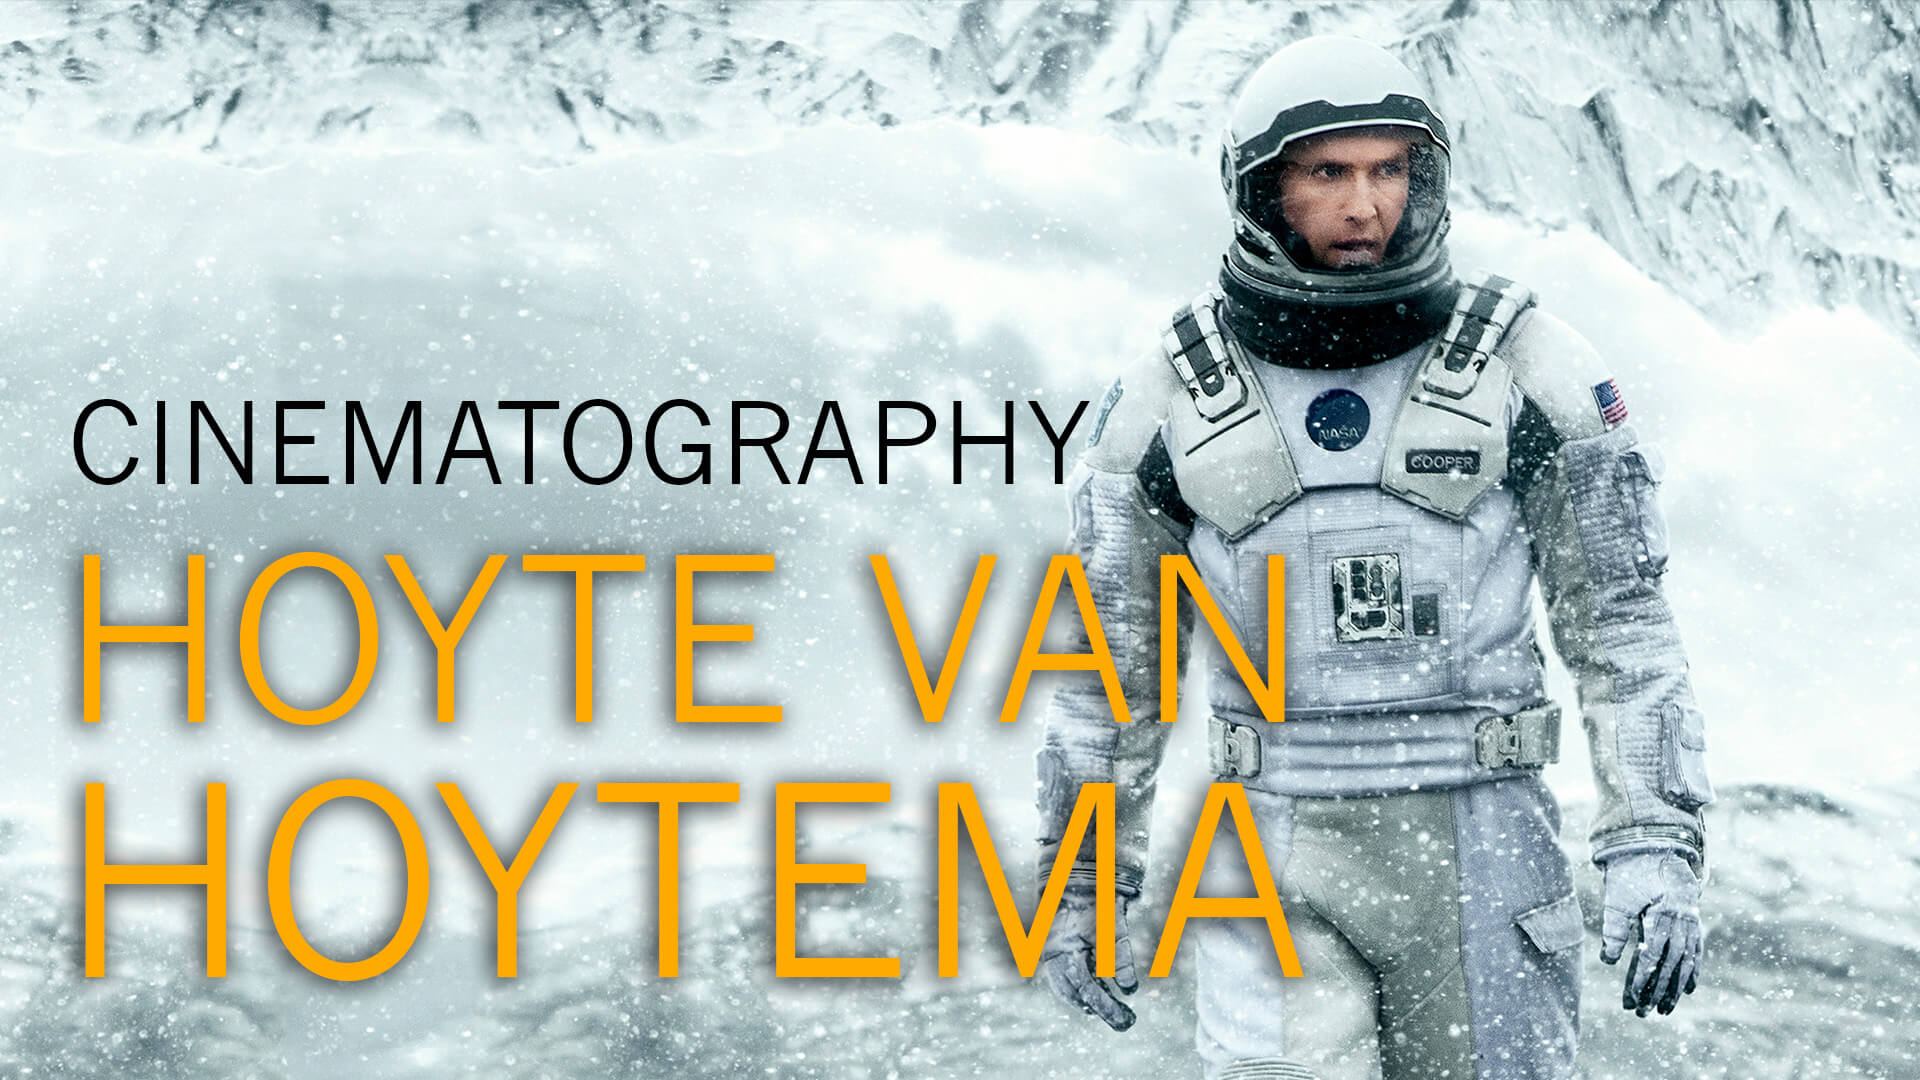 Understanding the Cinematography of Hoyte Van Hoytema